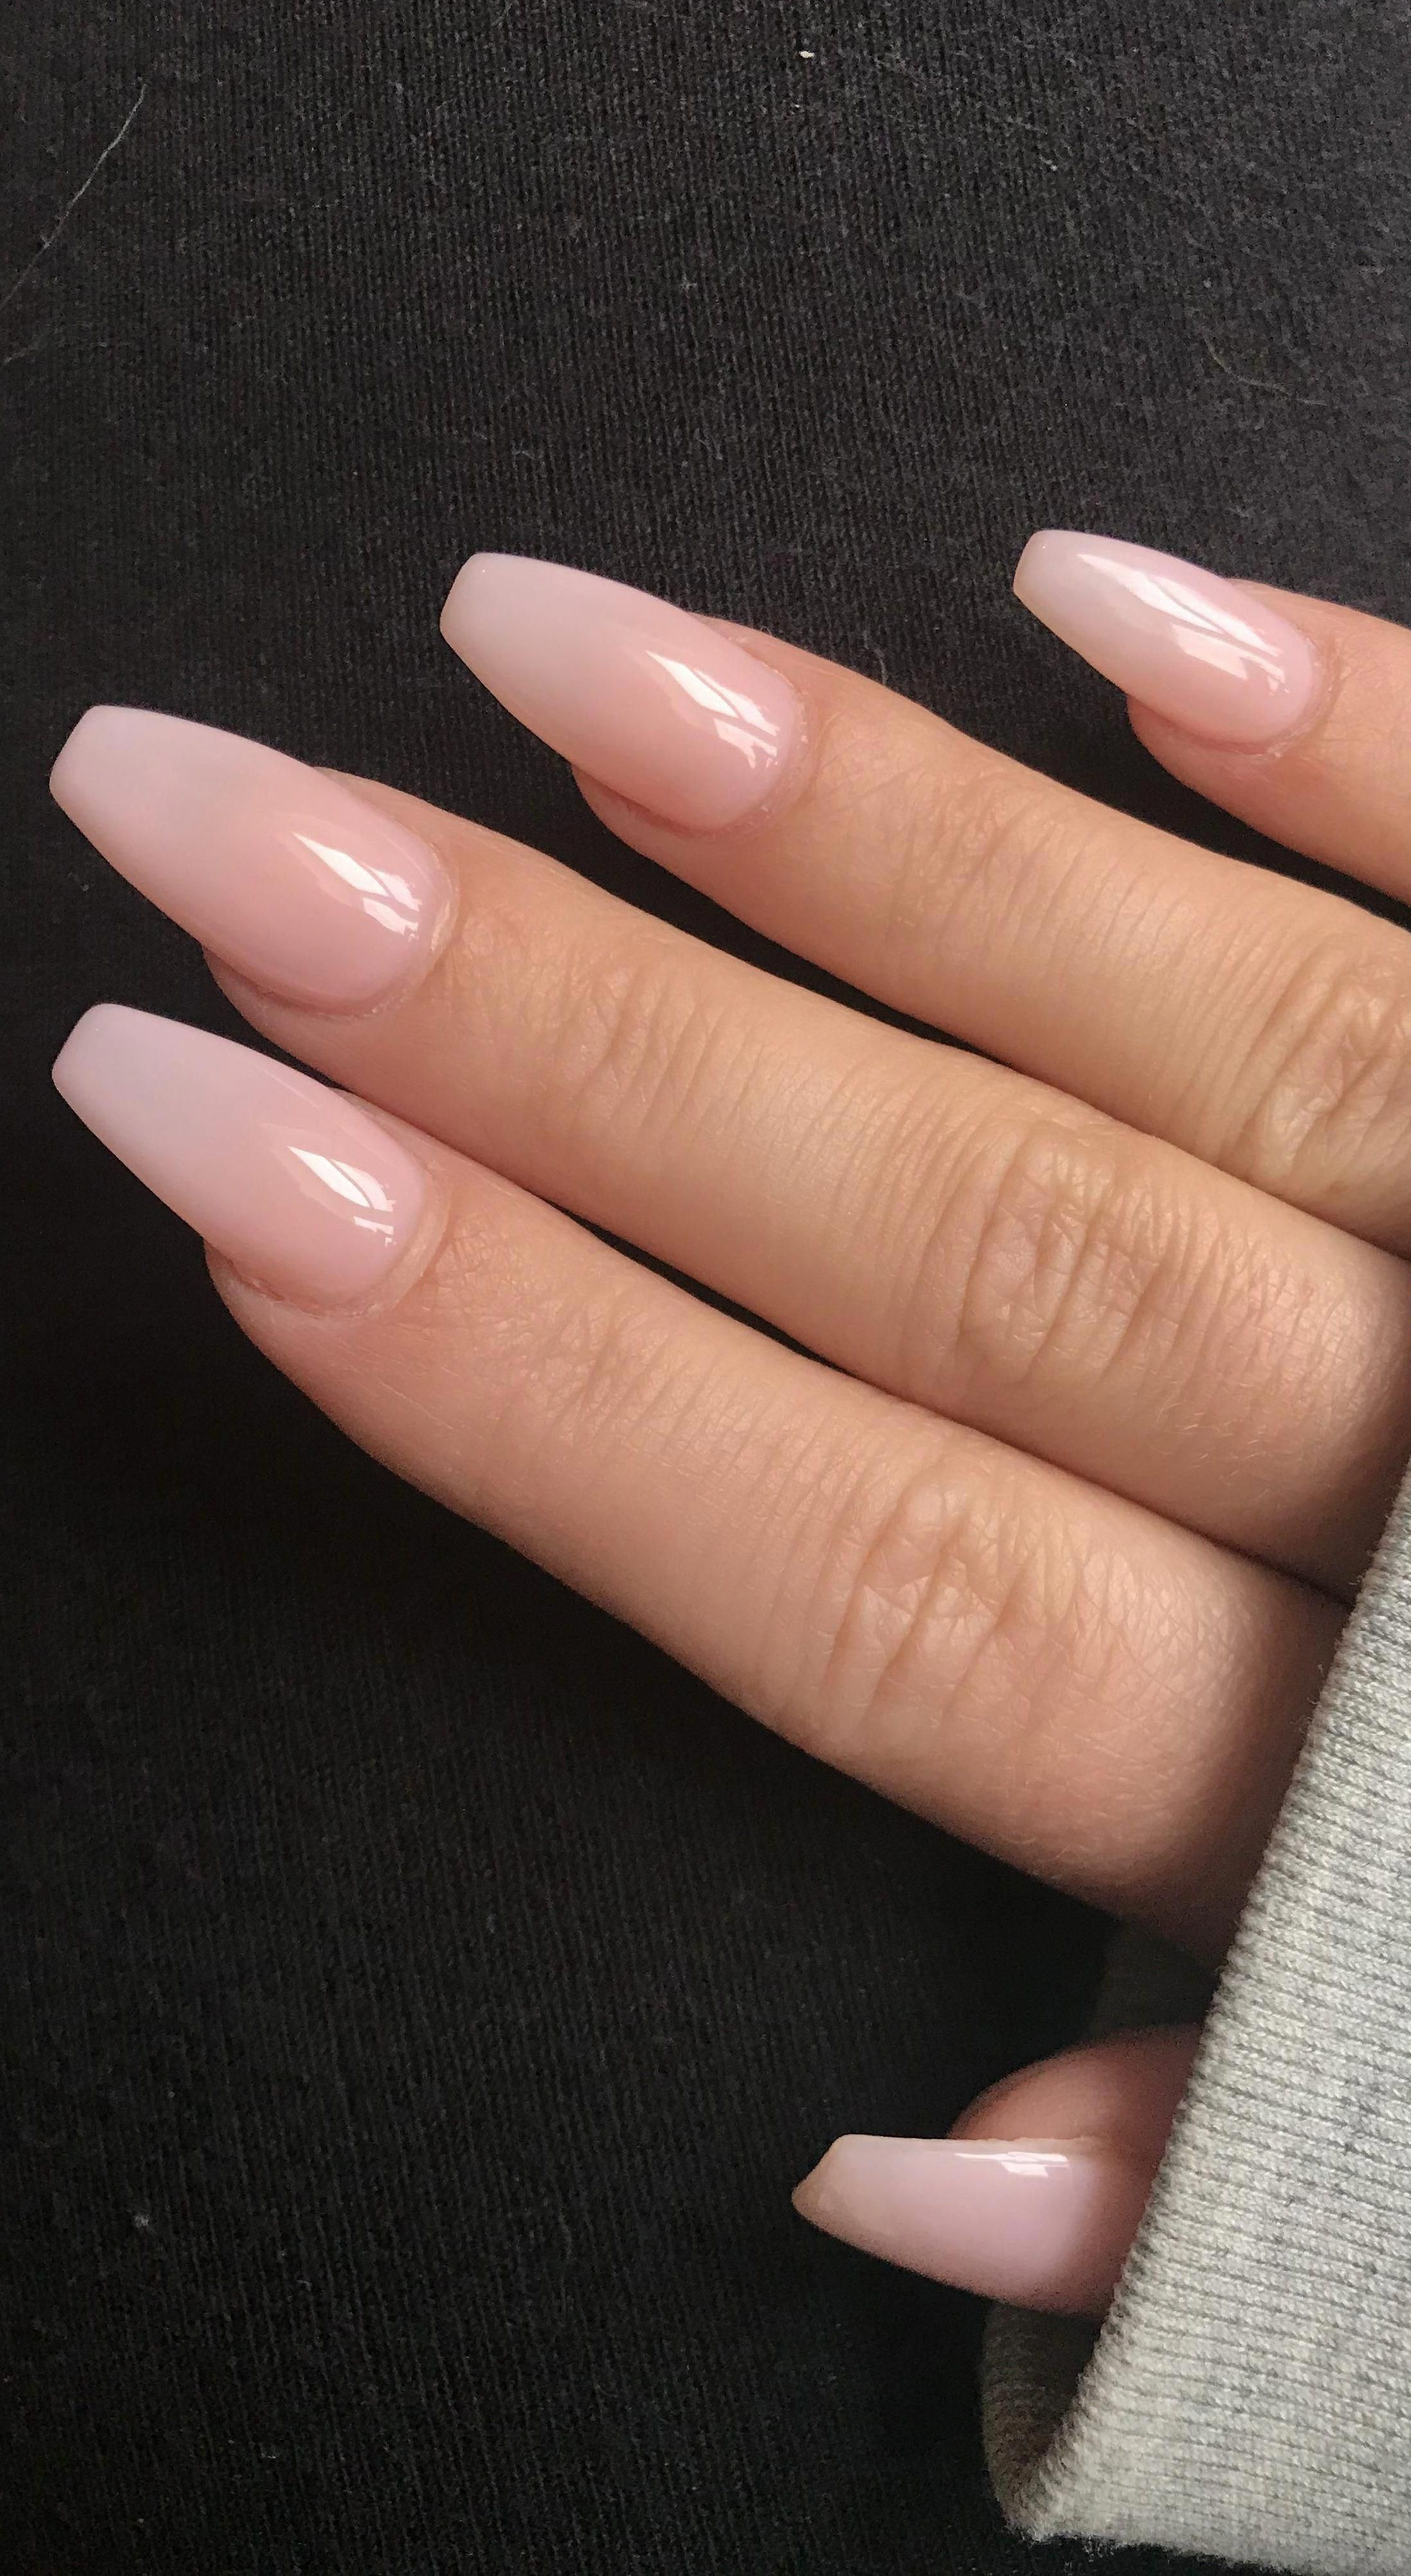 24 Acrylic Coffin Nail Designs To Enhance Your Features Acrylic Coffin Nail Designs Modern Fashion Best Acrylic Nails Coffin Nails Designs Cute Acrylic Nails